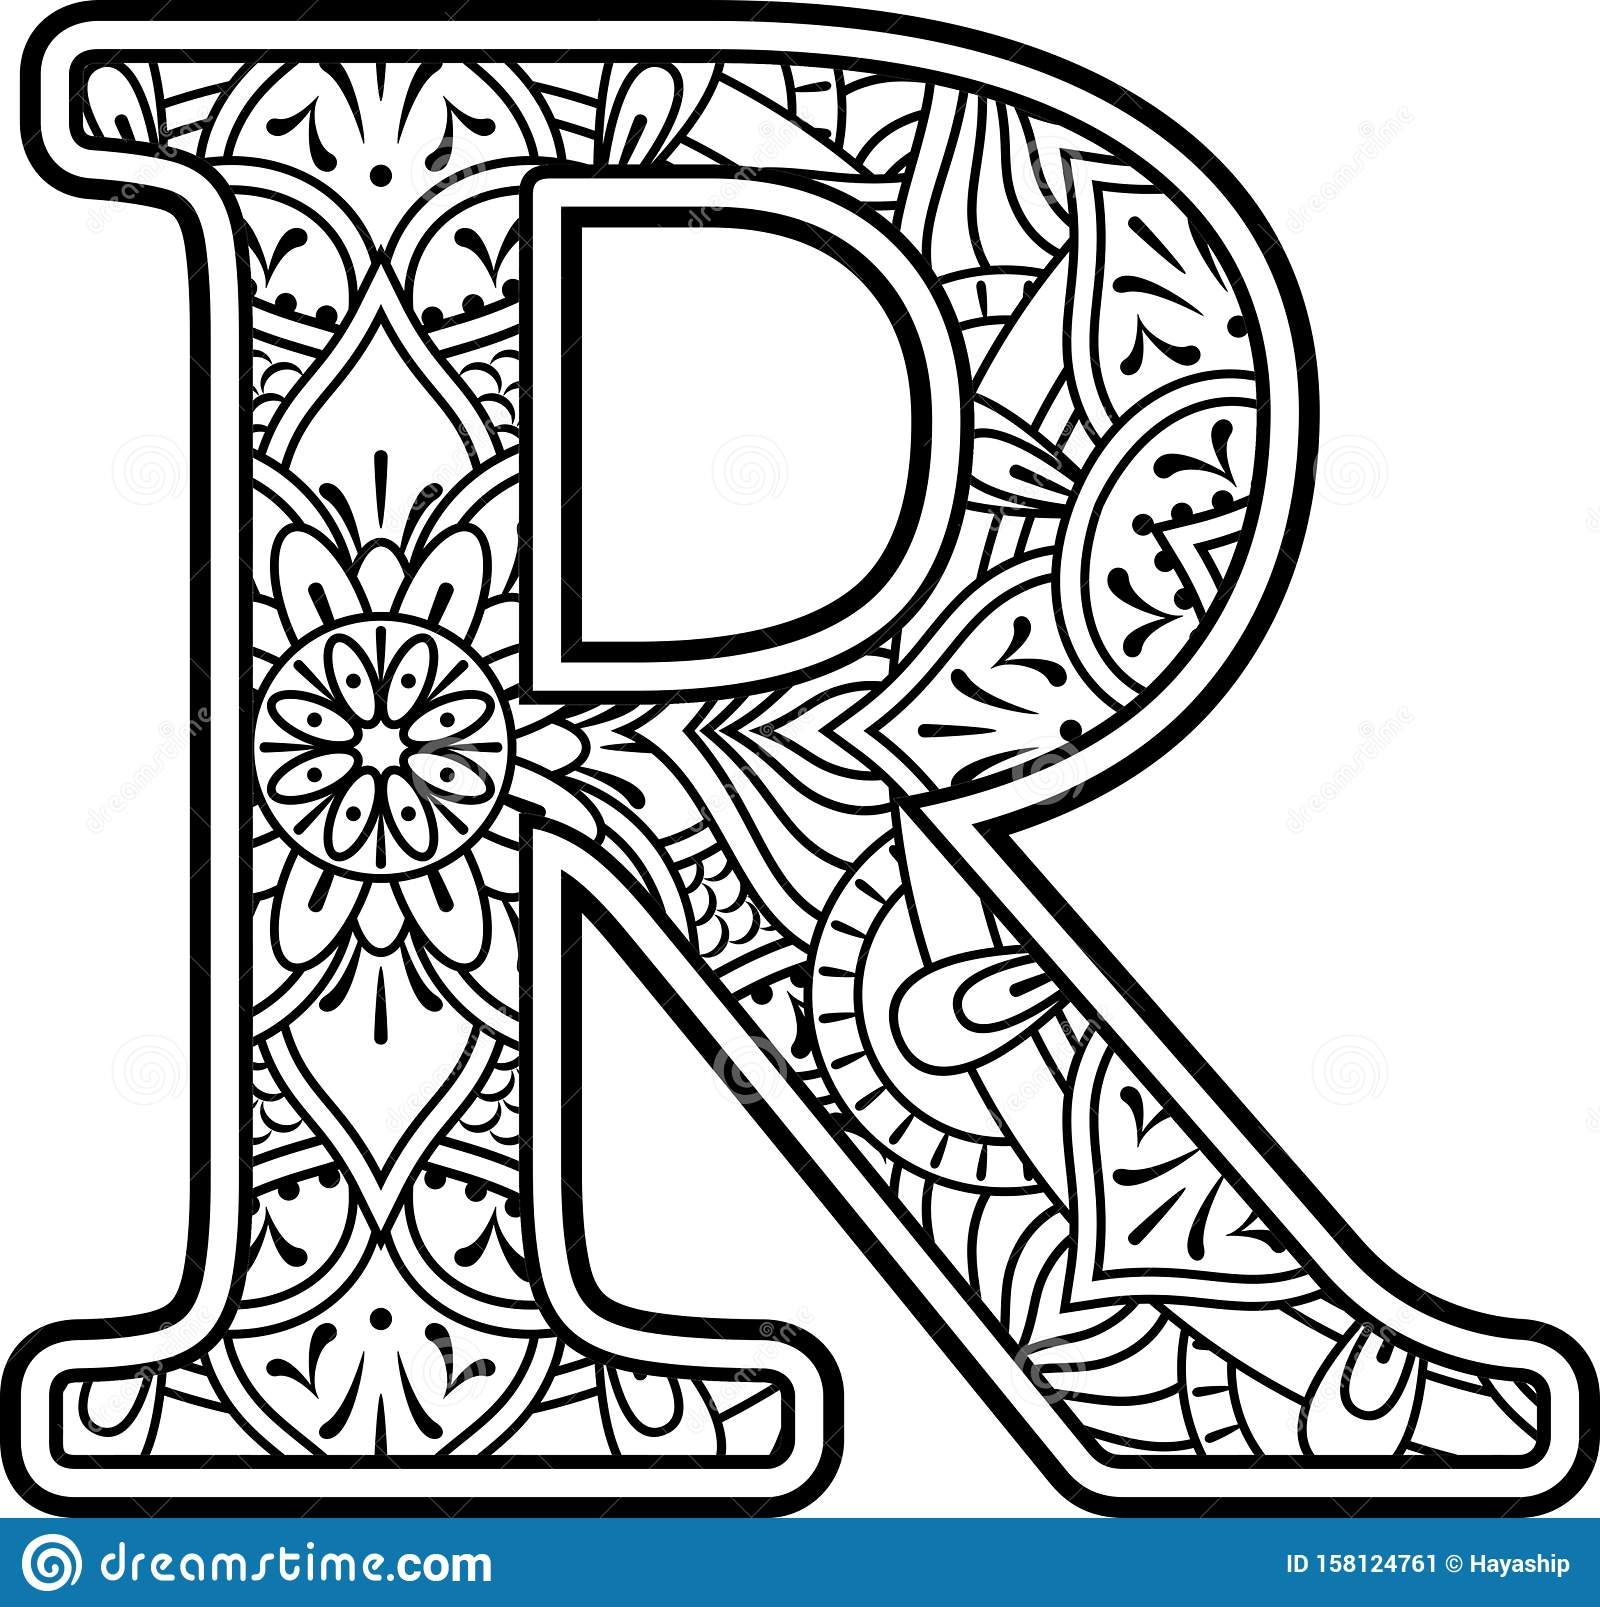 initial r doodle mandala coloring therapy stock vector